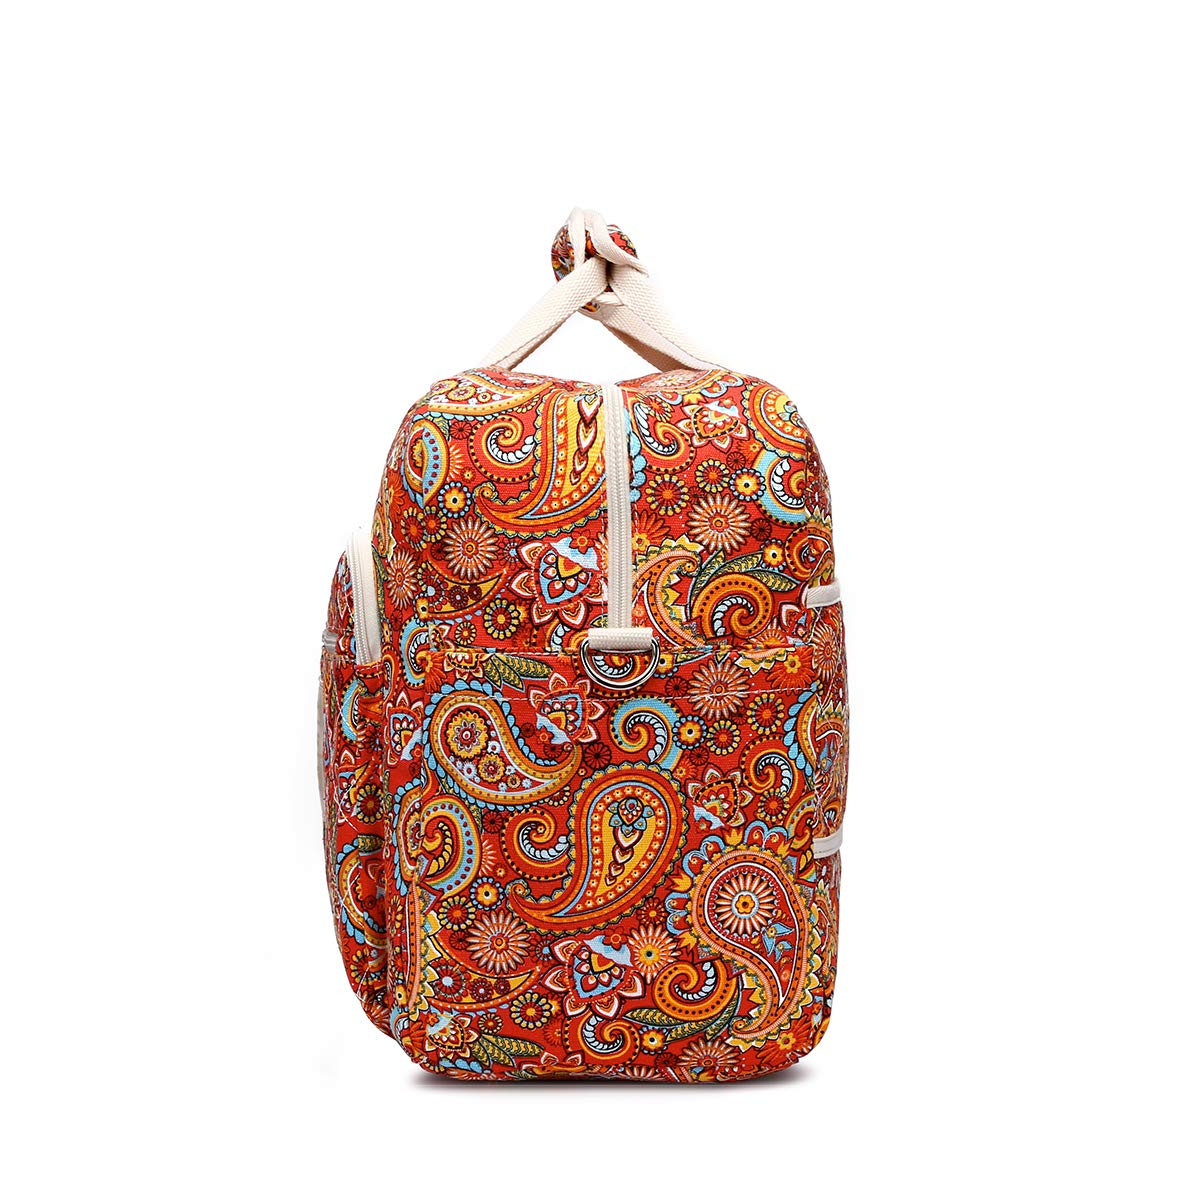 Malirona Women's Canvas Overnight Weekender Bag Carry On Travel Duffel Tote Bag Bohemian Flower (Red Flower) by Malirona (Image #3)